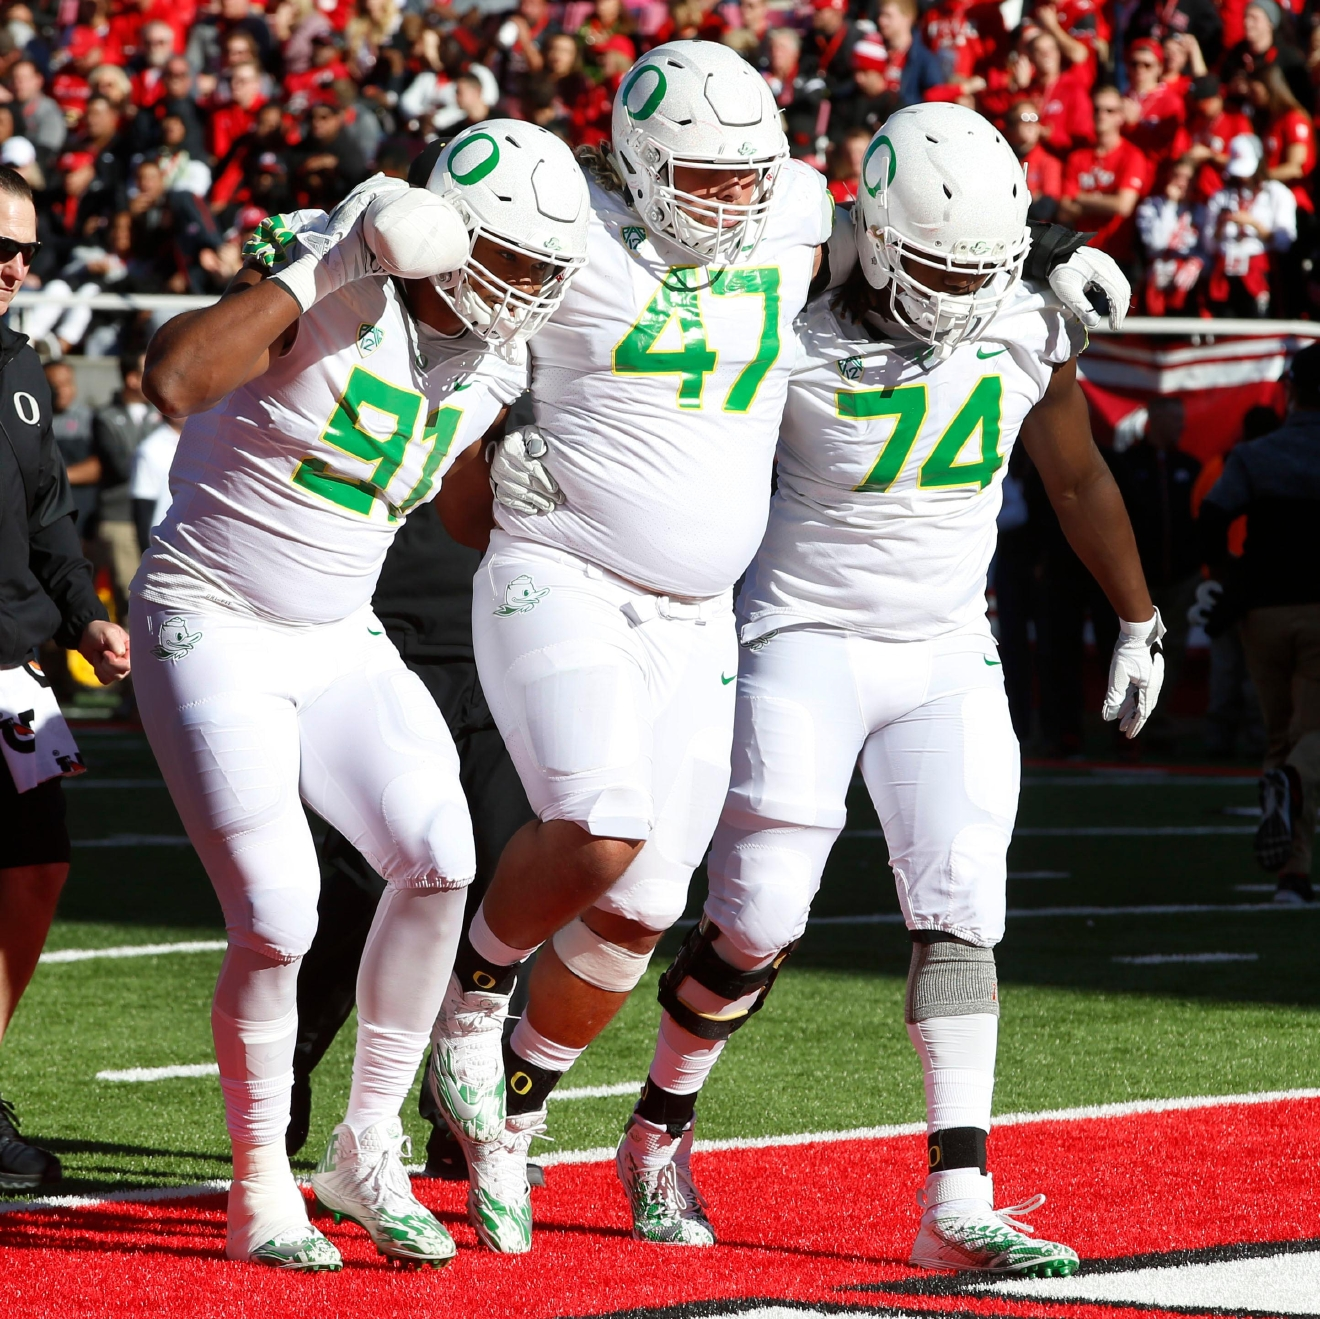 Oregon defensive lineman Rex Manu (47) is helped off the field after being injured by defensive lineman T.J. Daniel (91) and defensive lineman Elijah George (74) in the first half during an NCAA college football game, Saturday, Nov. 19, 2016, in Salt Lake City. (AP Photo/George Frey)